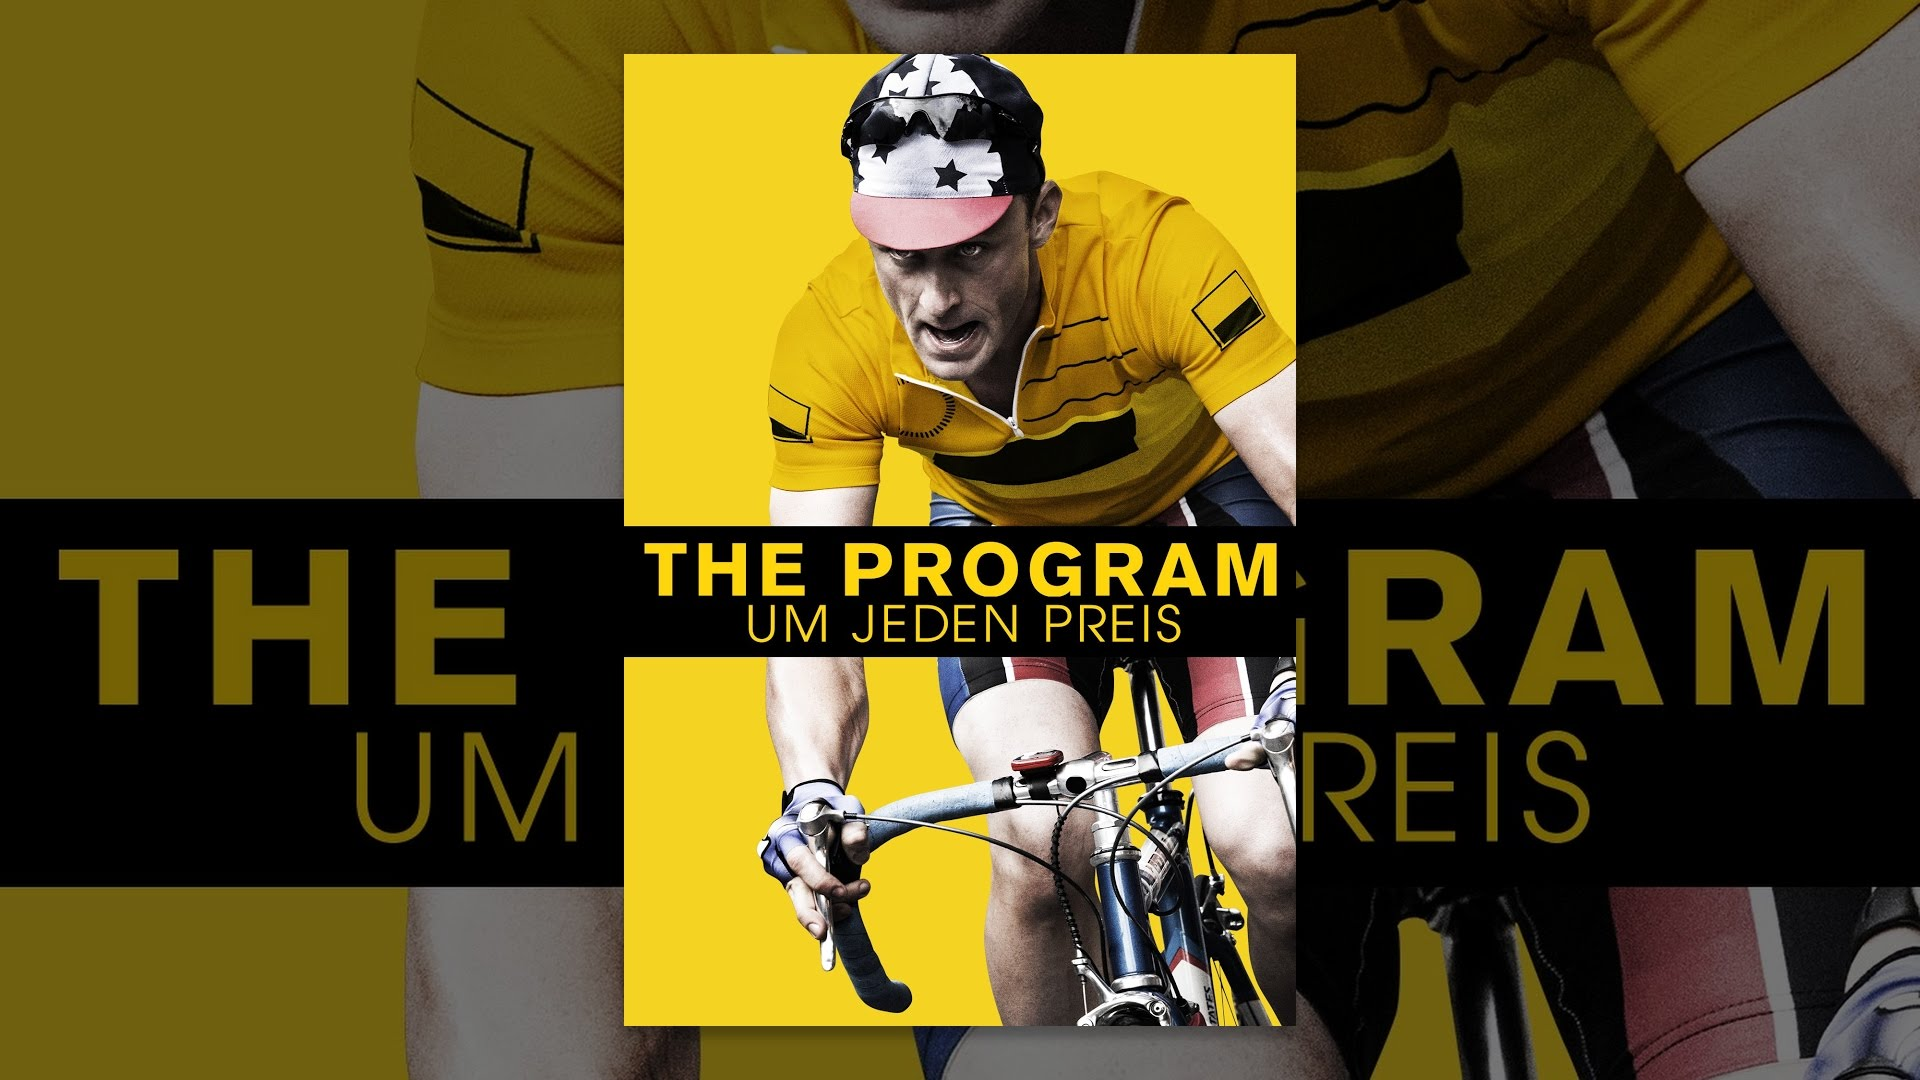 the program um jeden preis